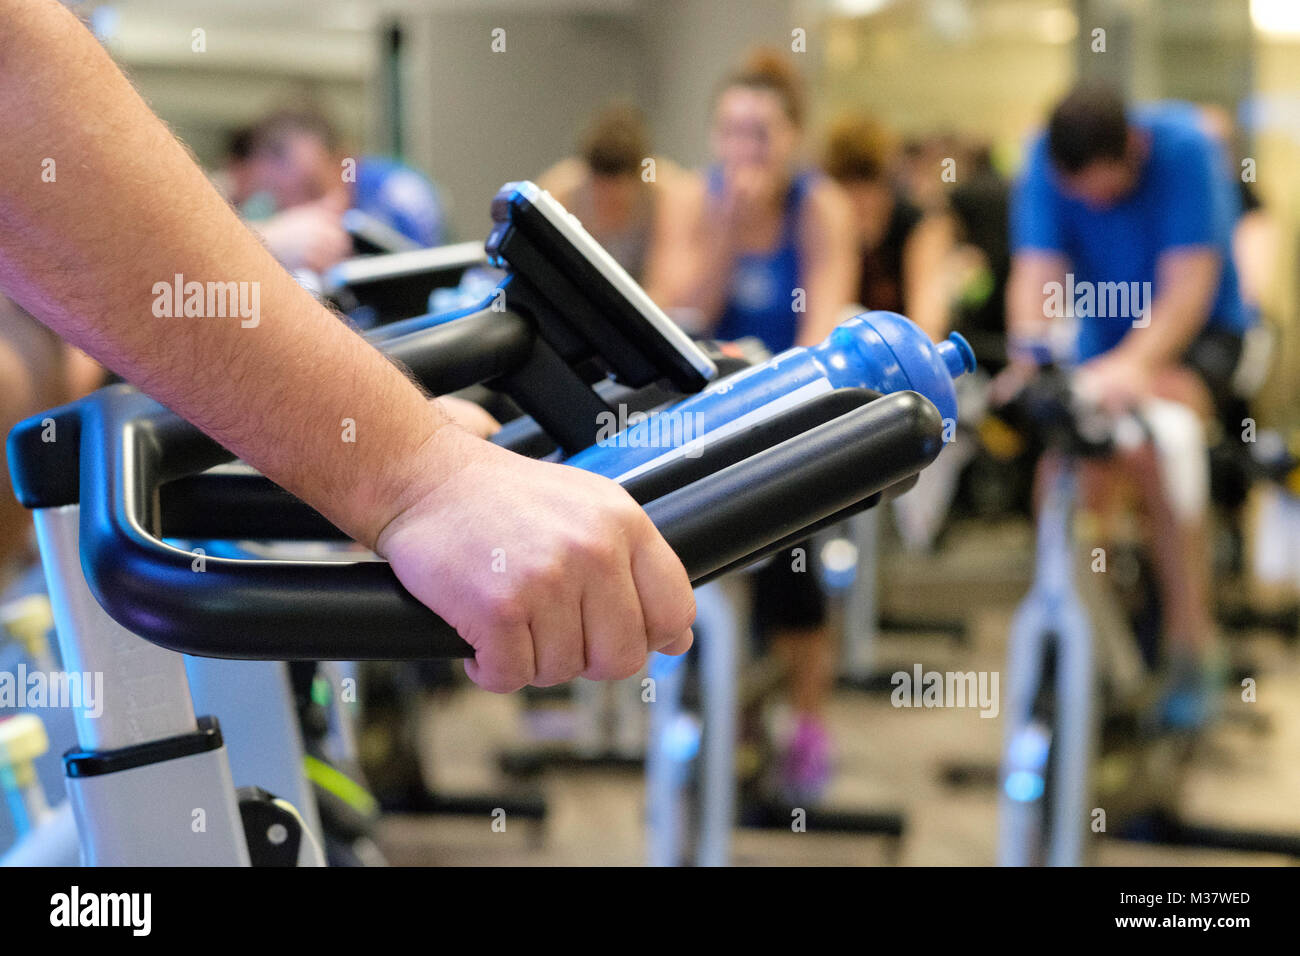 Close up of personne pendant un cours de gym spinning Photo Stock